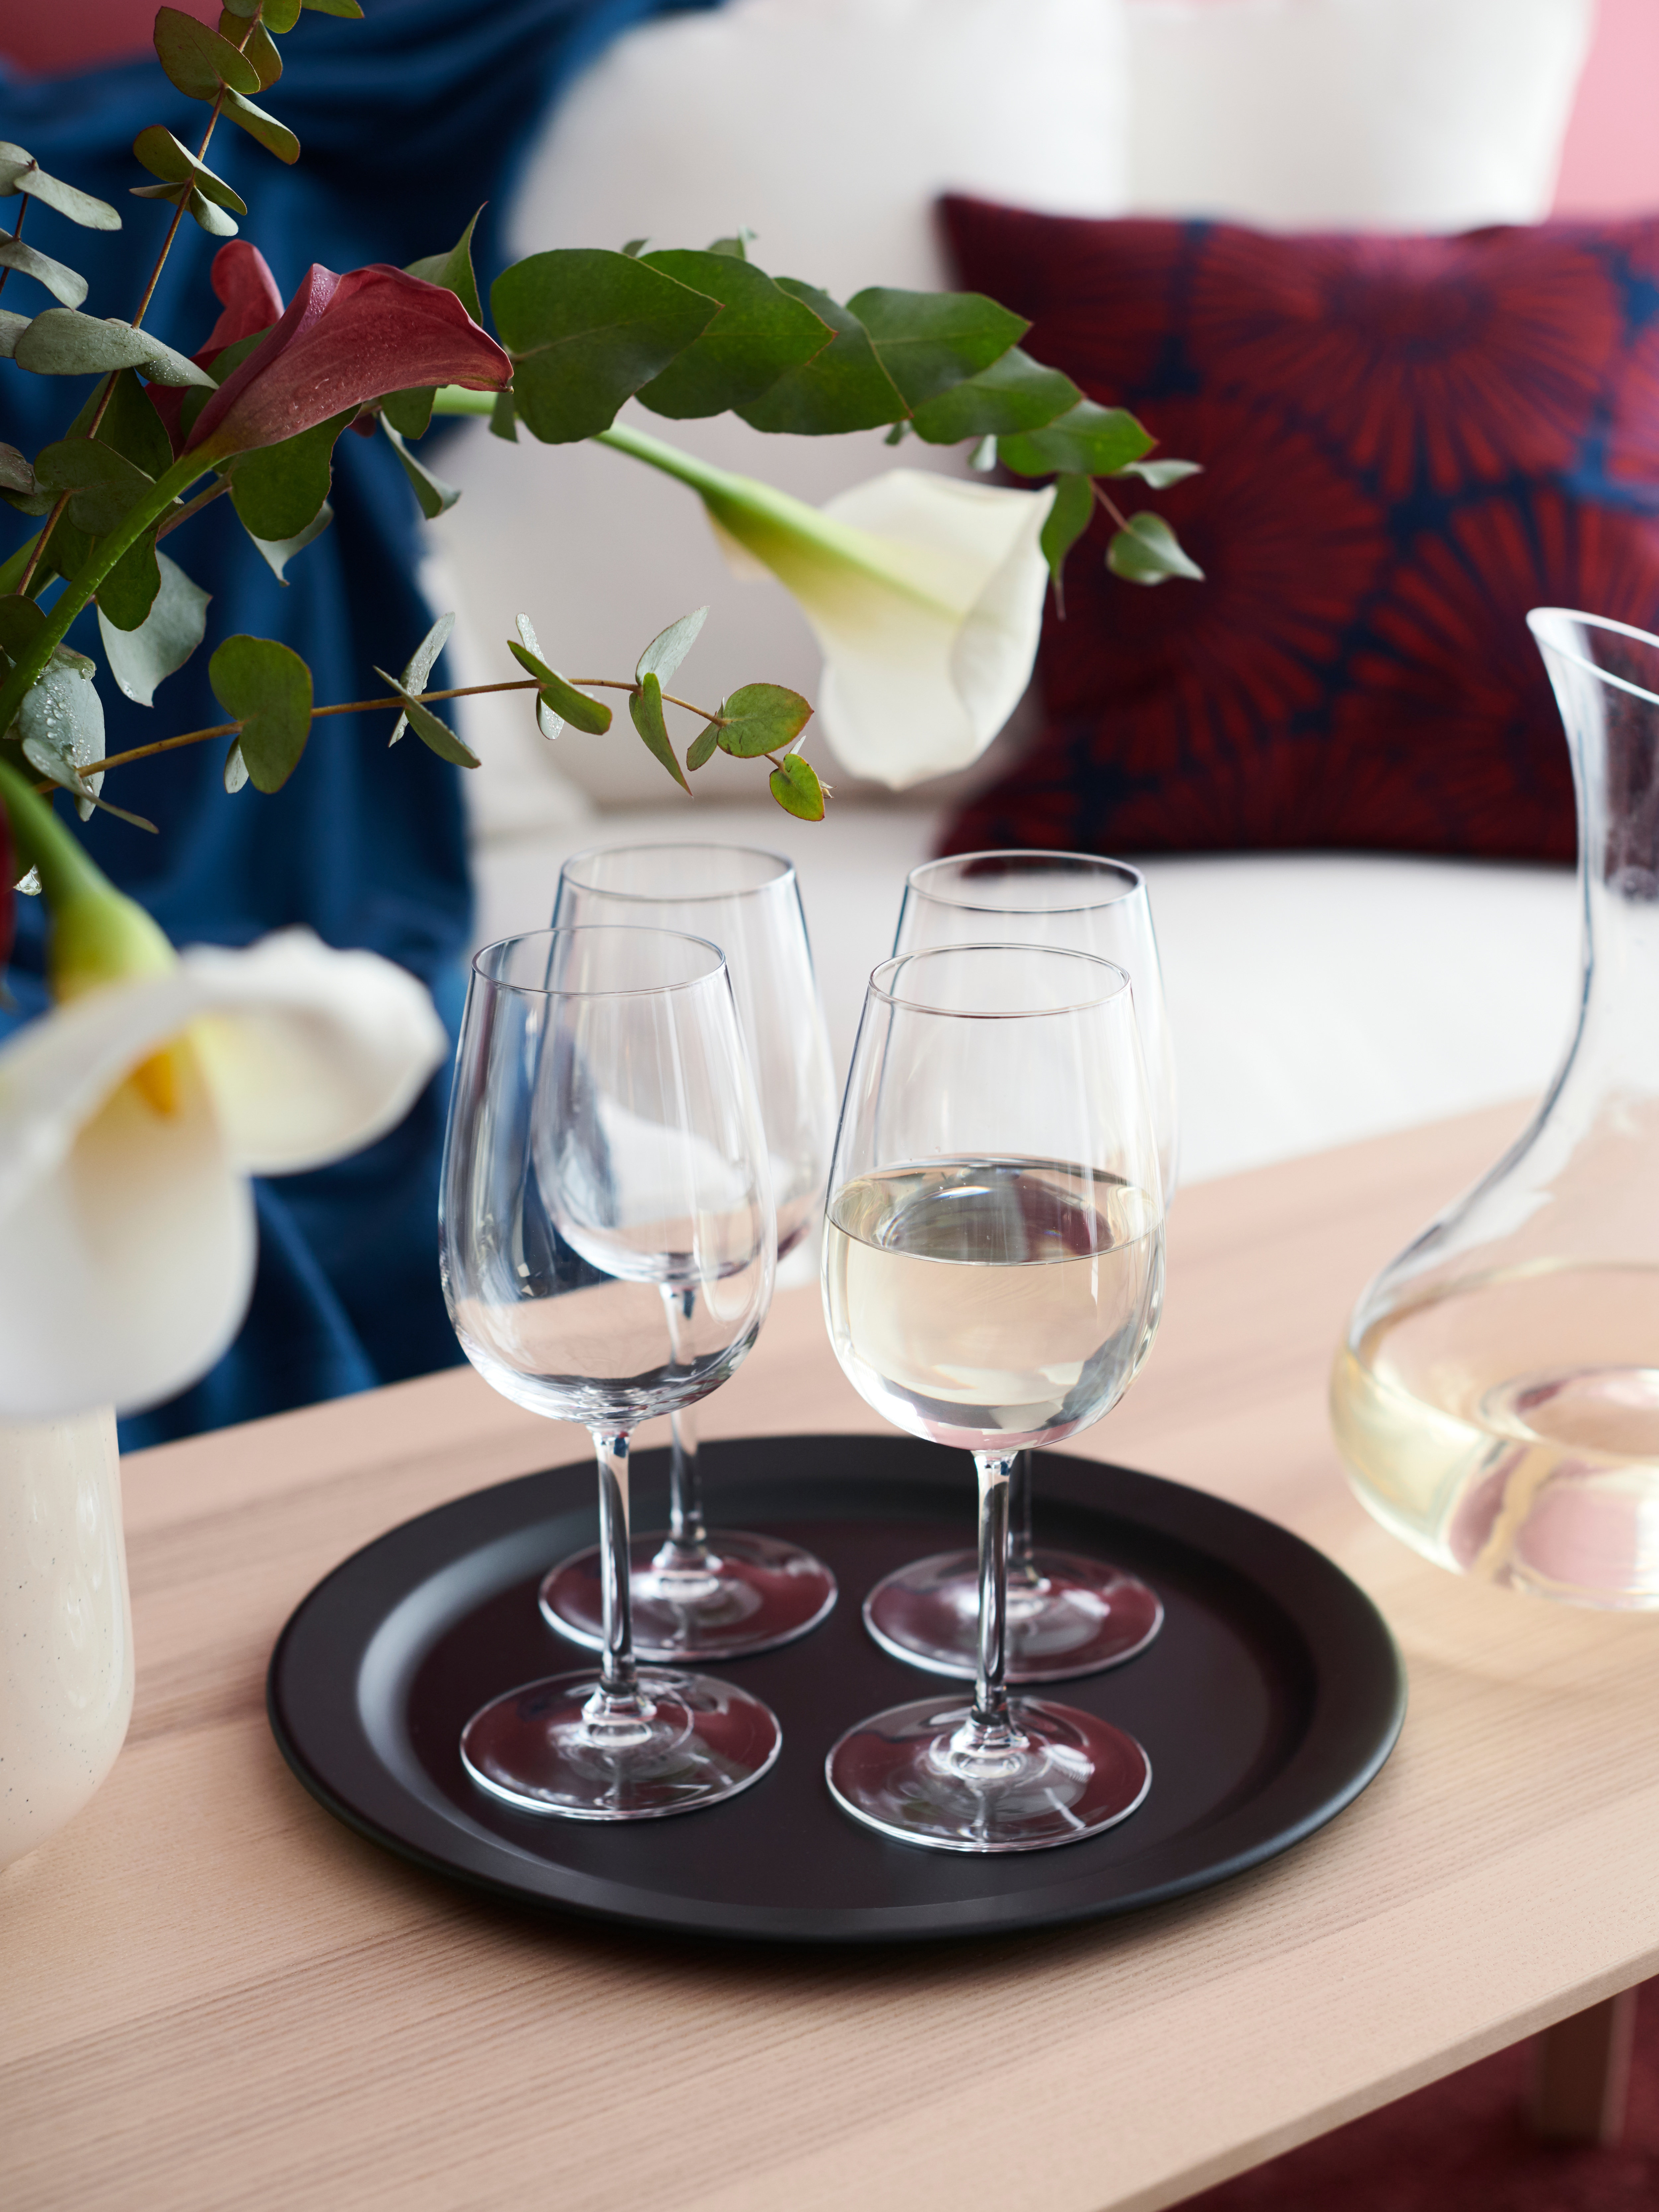 Four STORSINT white wine glasses on a round black serving platter with flowers in the foreground.